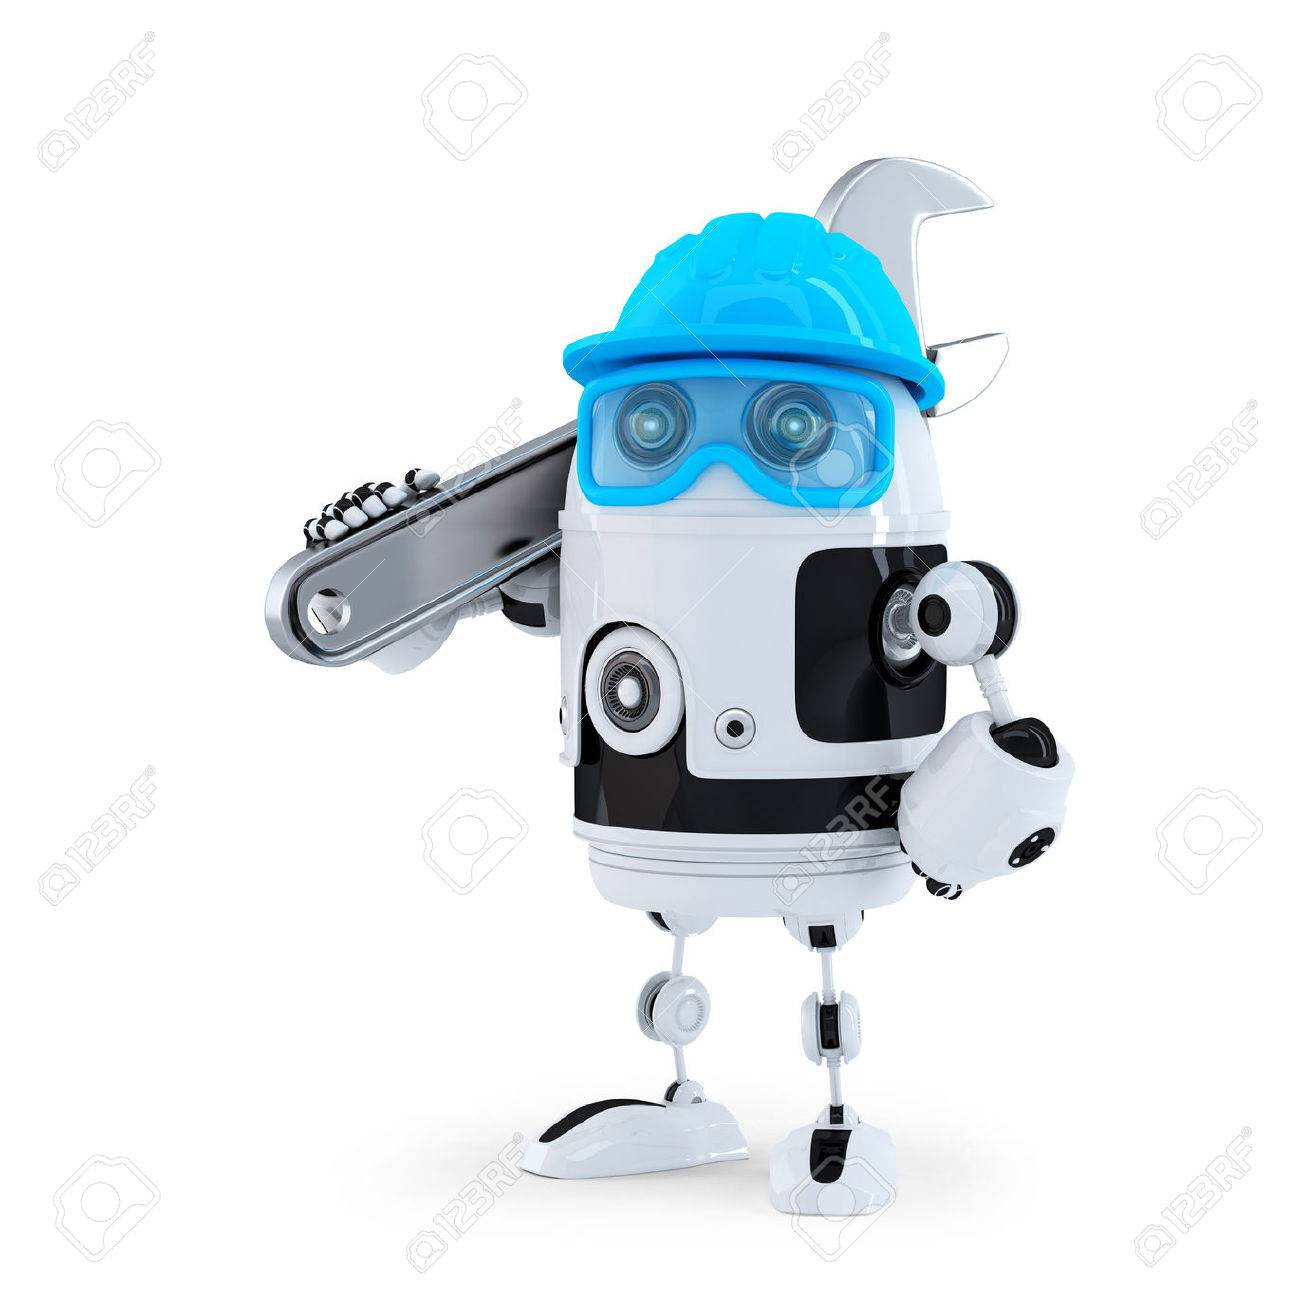 3D Robot with adjustable wrench. Technology concept. Isolated. Contains clipping path Standard-Bild - 28219219